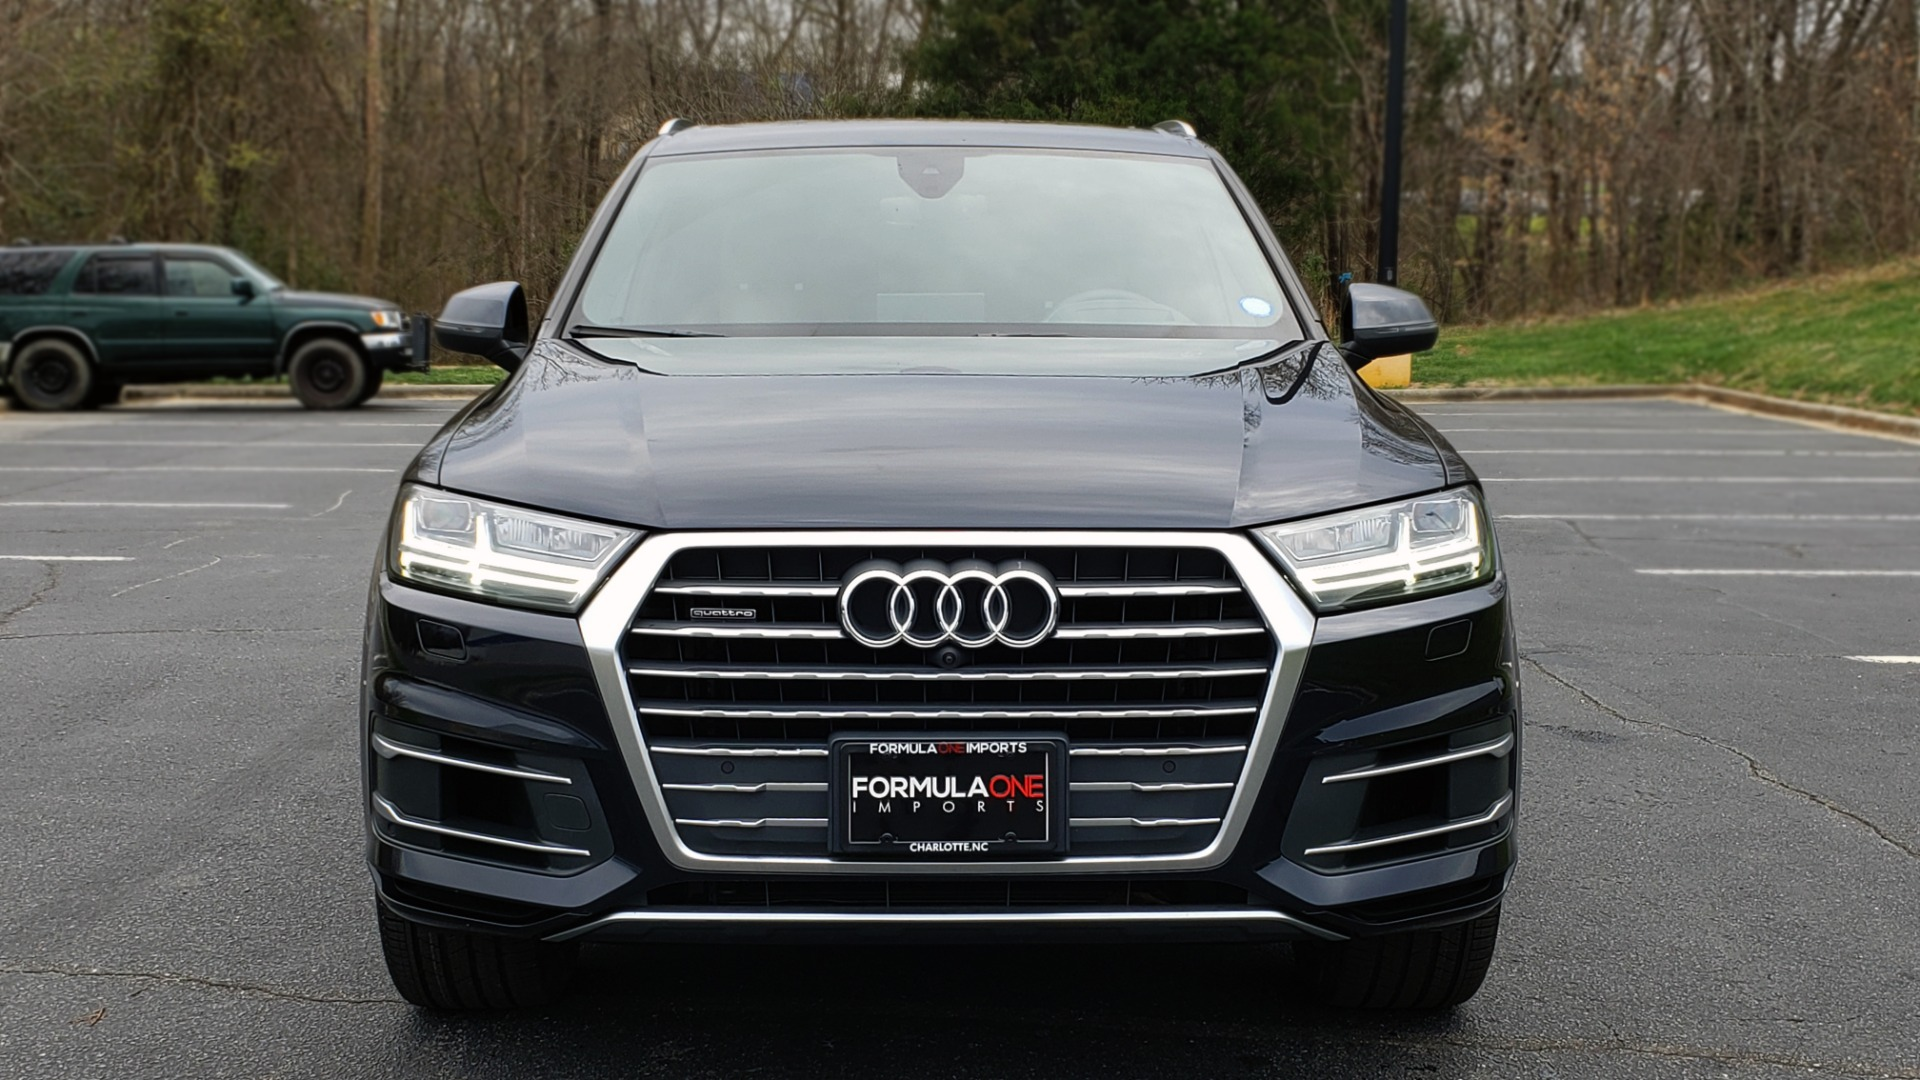 Used 2017 Audi Q7 PRESTIGE 3.0T / AWD / NAV / PANO-ROOF / HTD STS / BOSE / VISION for sale Sold at Formula Imports in Charlotte NC 28227 30